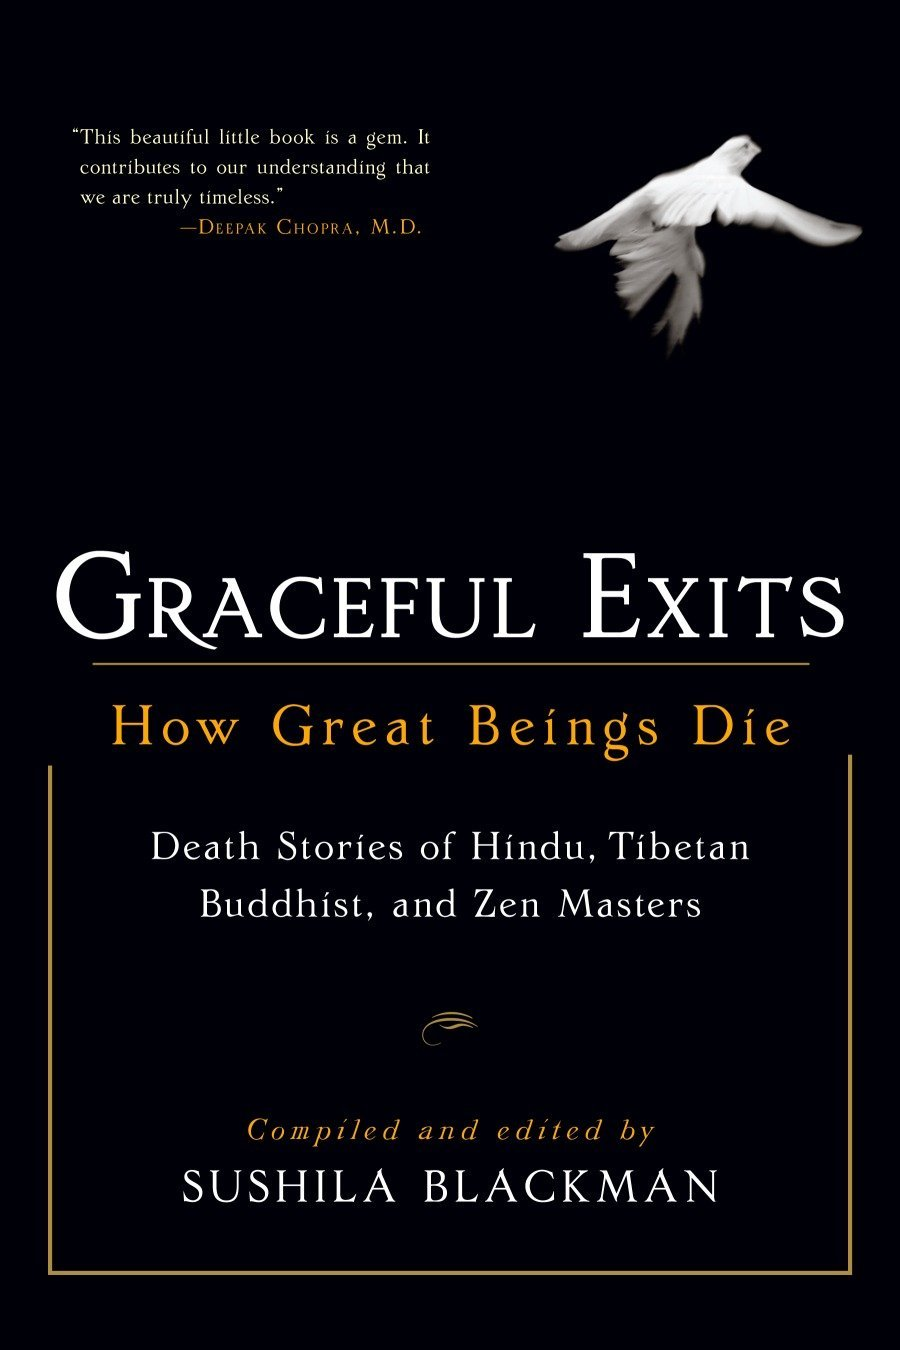 Graceful Exits: How Great Beings Die (Death stories of Hindu, Tibetan Buddhist, and Zen masters)